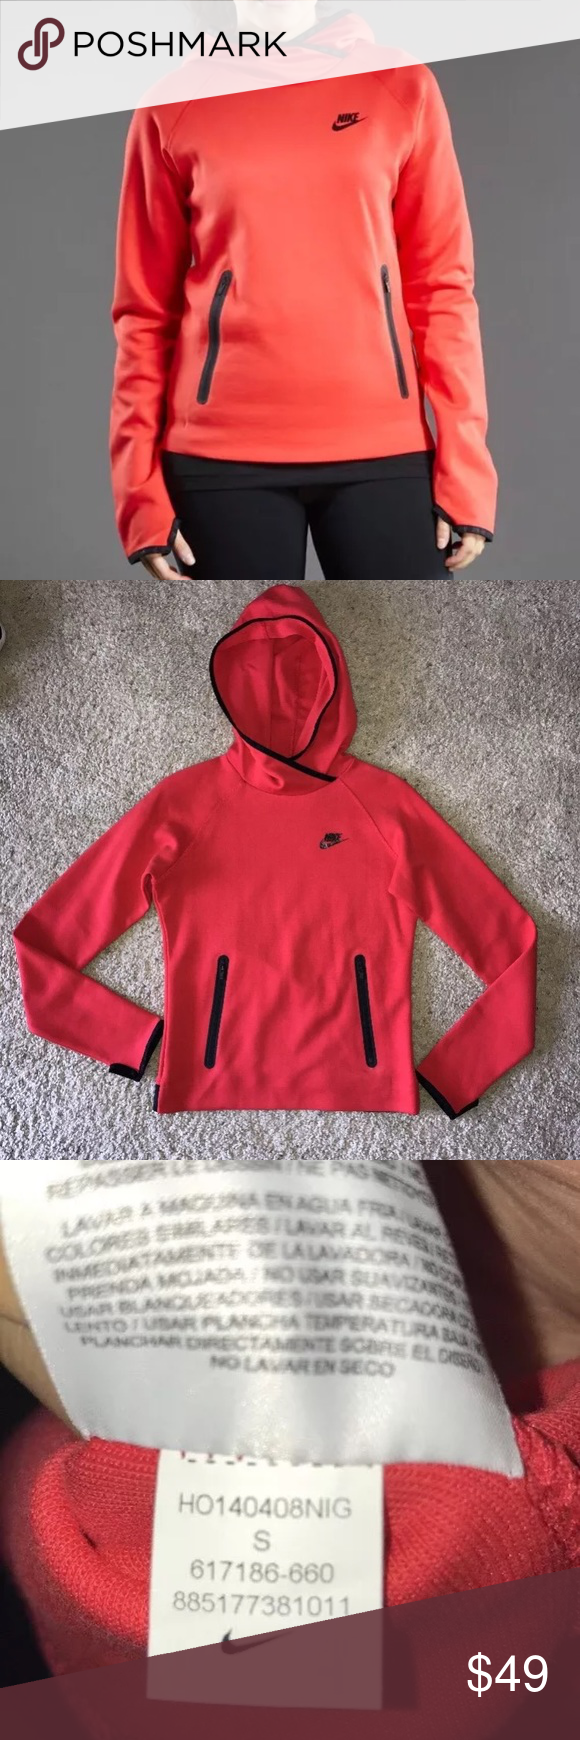 NIKE Women's Tech Fleece Pullover Hoodie Red S New without